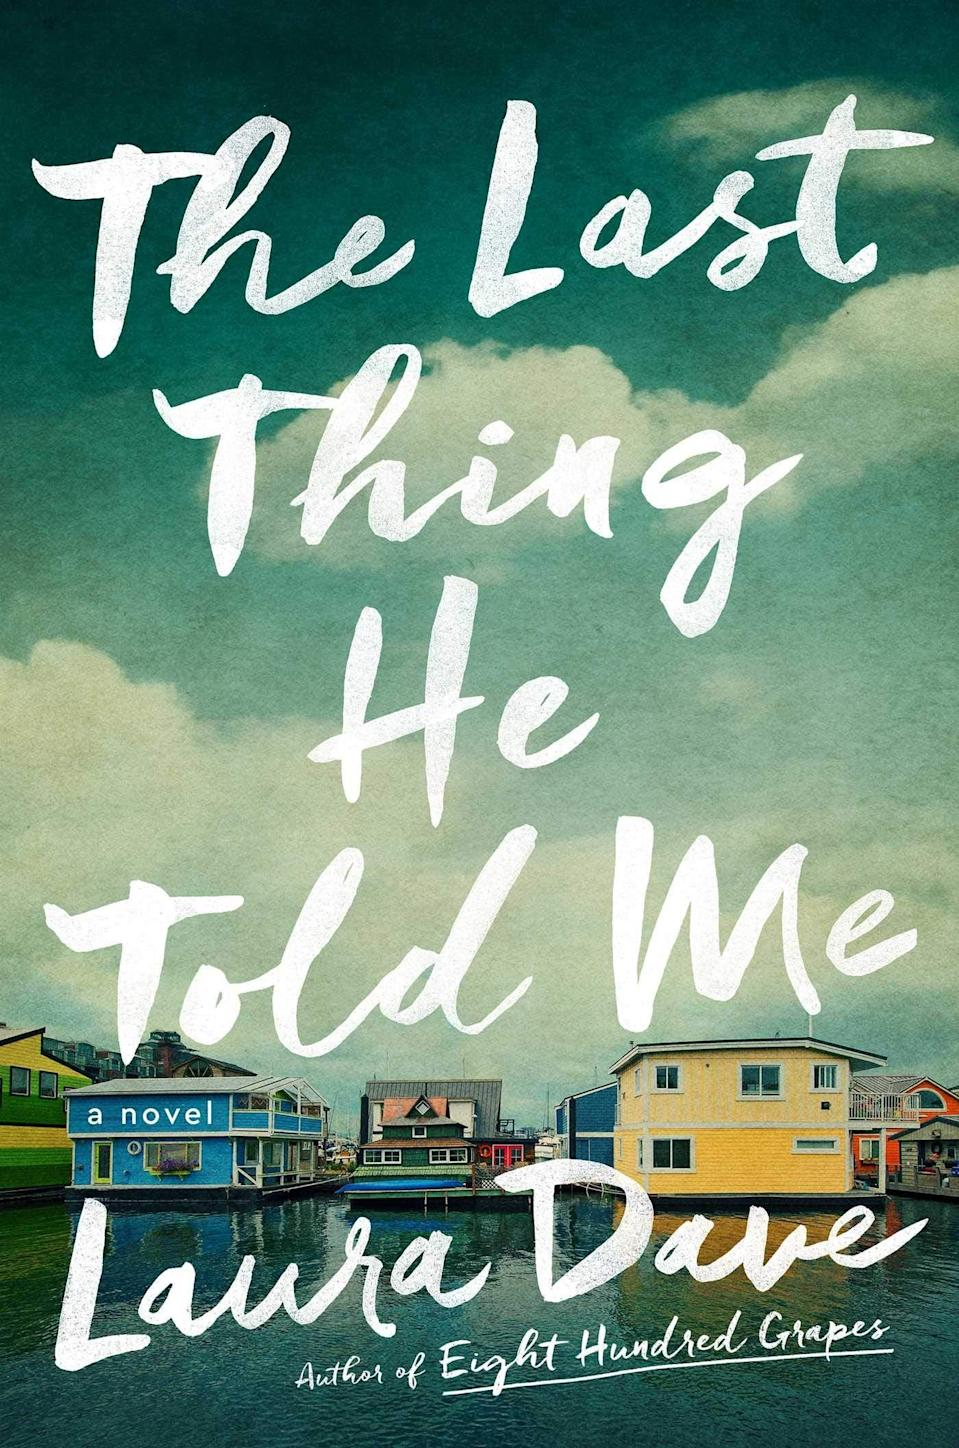 """<p>Part mystery, part family drama, <span><strong>The Last Thing He Told Me</strong></span> by Laura Dave is impossible to put down. When Hannah Hall's husband of just one year disappears, he leaves a note begging his wife to """"protect her."""" Hannah quickly surmises the her in question is her husband's 16-year-old daughter, who may hold the key to unraveling his secret past. (This one is set to become a <a href=""""https://www.popsugar.com/entertainment/the-last-thing-he-told-me-by-laura-dave-interview-and-review-48292118"""" class=""""link rapid-noclick-resp"""" rel=""""nofollow noopener"""" target=""""_blank"""" data-ylk=""""slk:miniseries starring Julia Roberts"""">miniseries starring Julia Roberts</a> soon, so you're going to want to read it ASAP.)</p> <p><em>Out May 4</em></p>"""